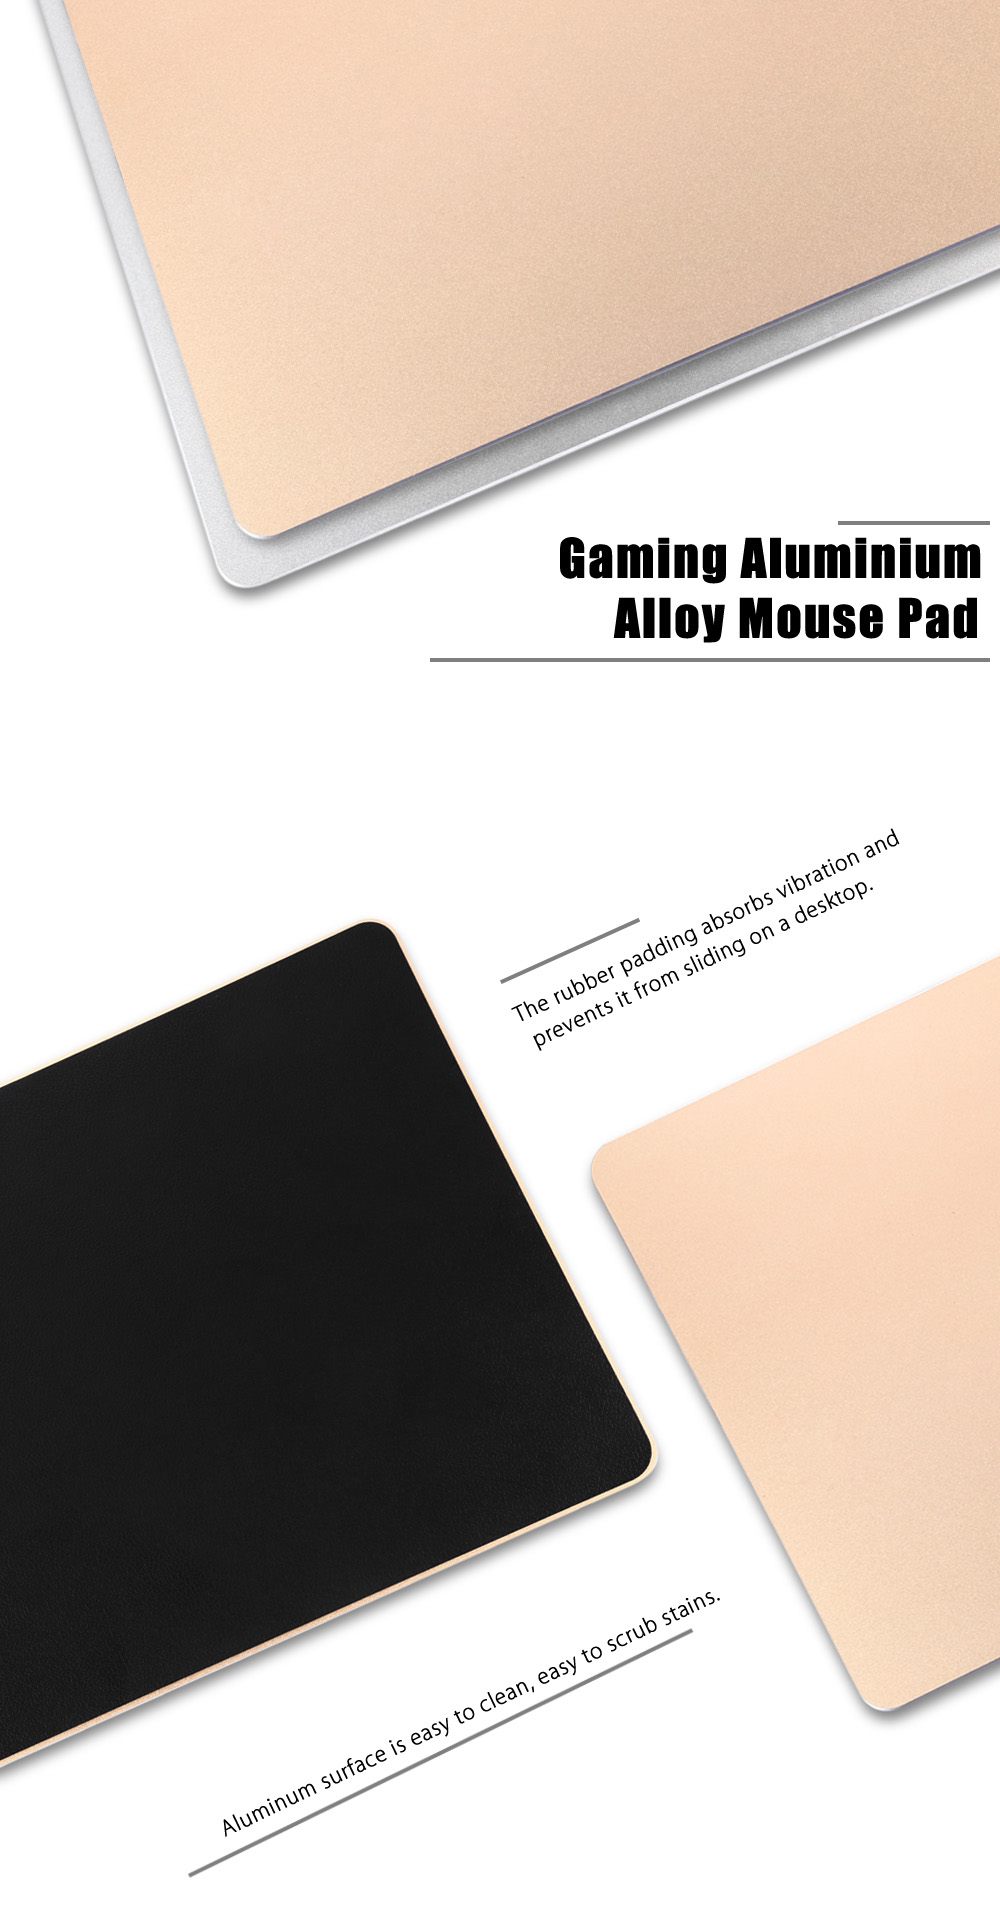 Gaming Aluminium Alloy Mouse Pad for Office Daily Supplies